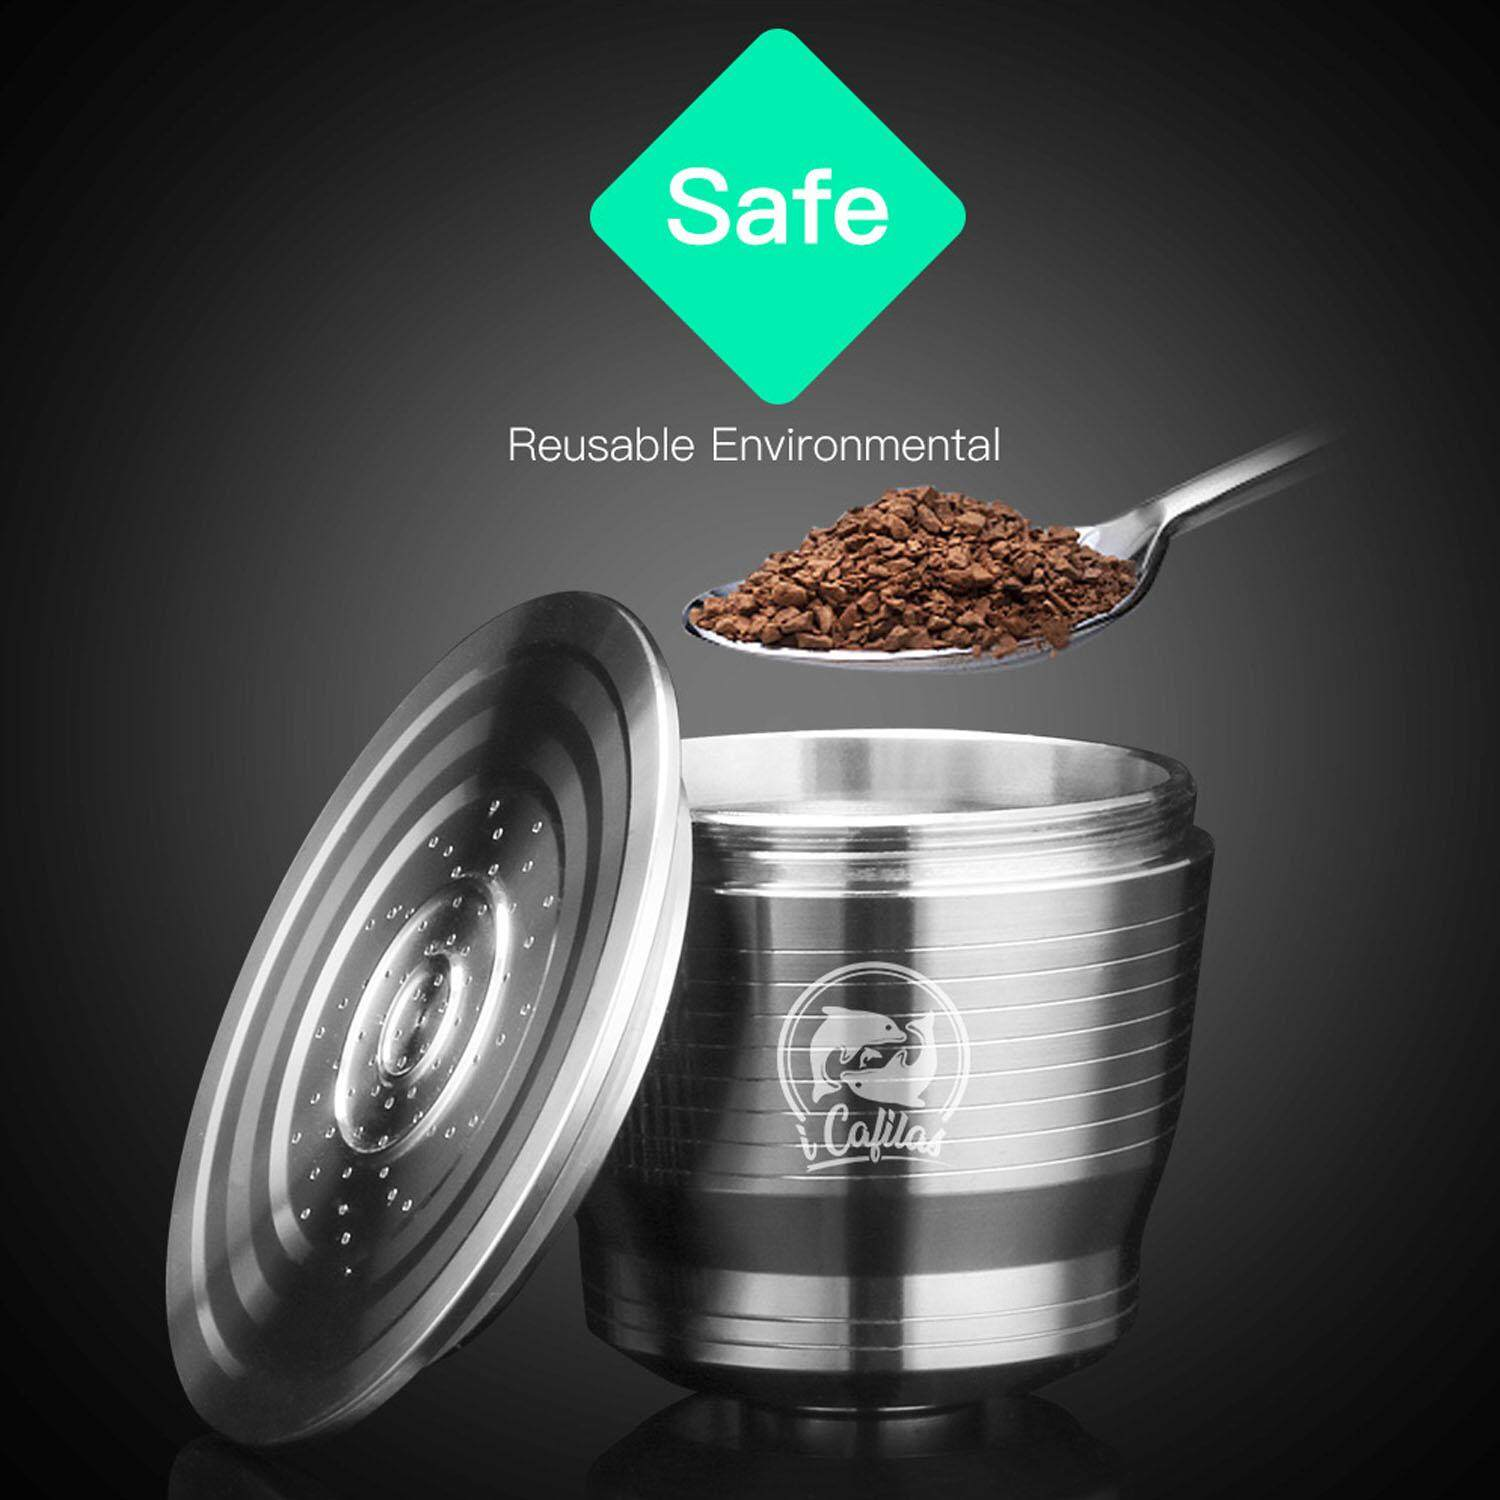 Stainless Steel Metal Refillable Reusable Coffee Filter Capsule Cup Compatible With Nespresso Machine By Duha.